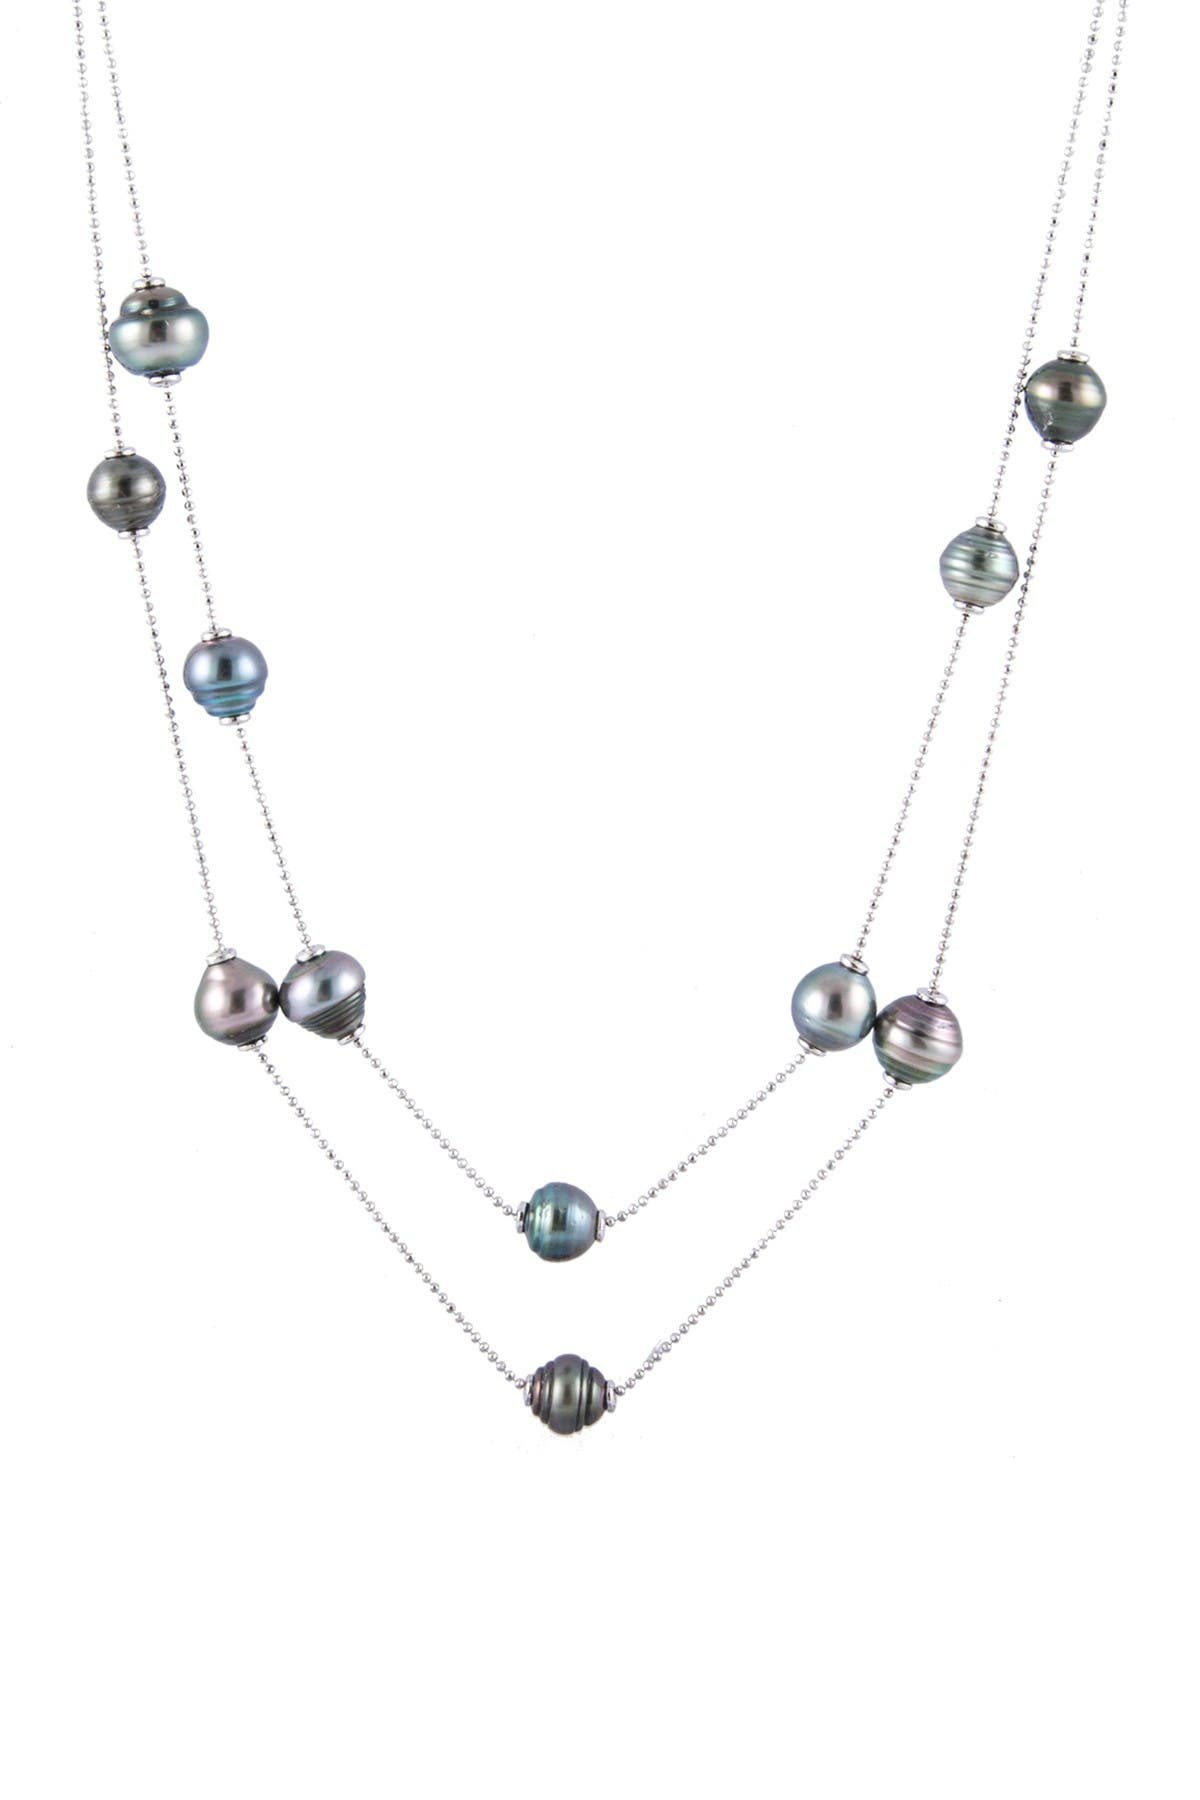 Image of Splendid Pearls 10-11mm Tahitian Pearl Tin Cup Double Strand Necklace